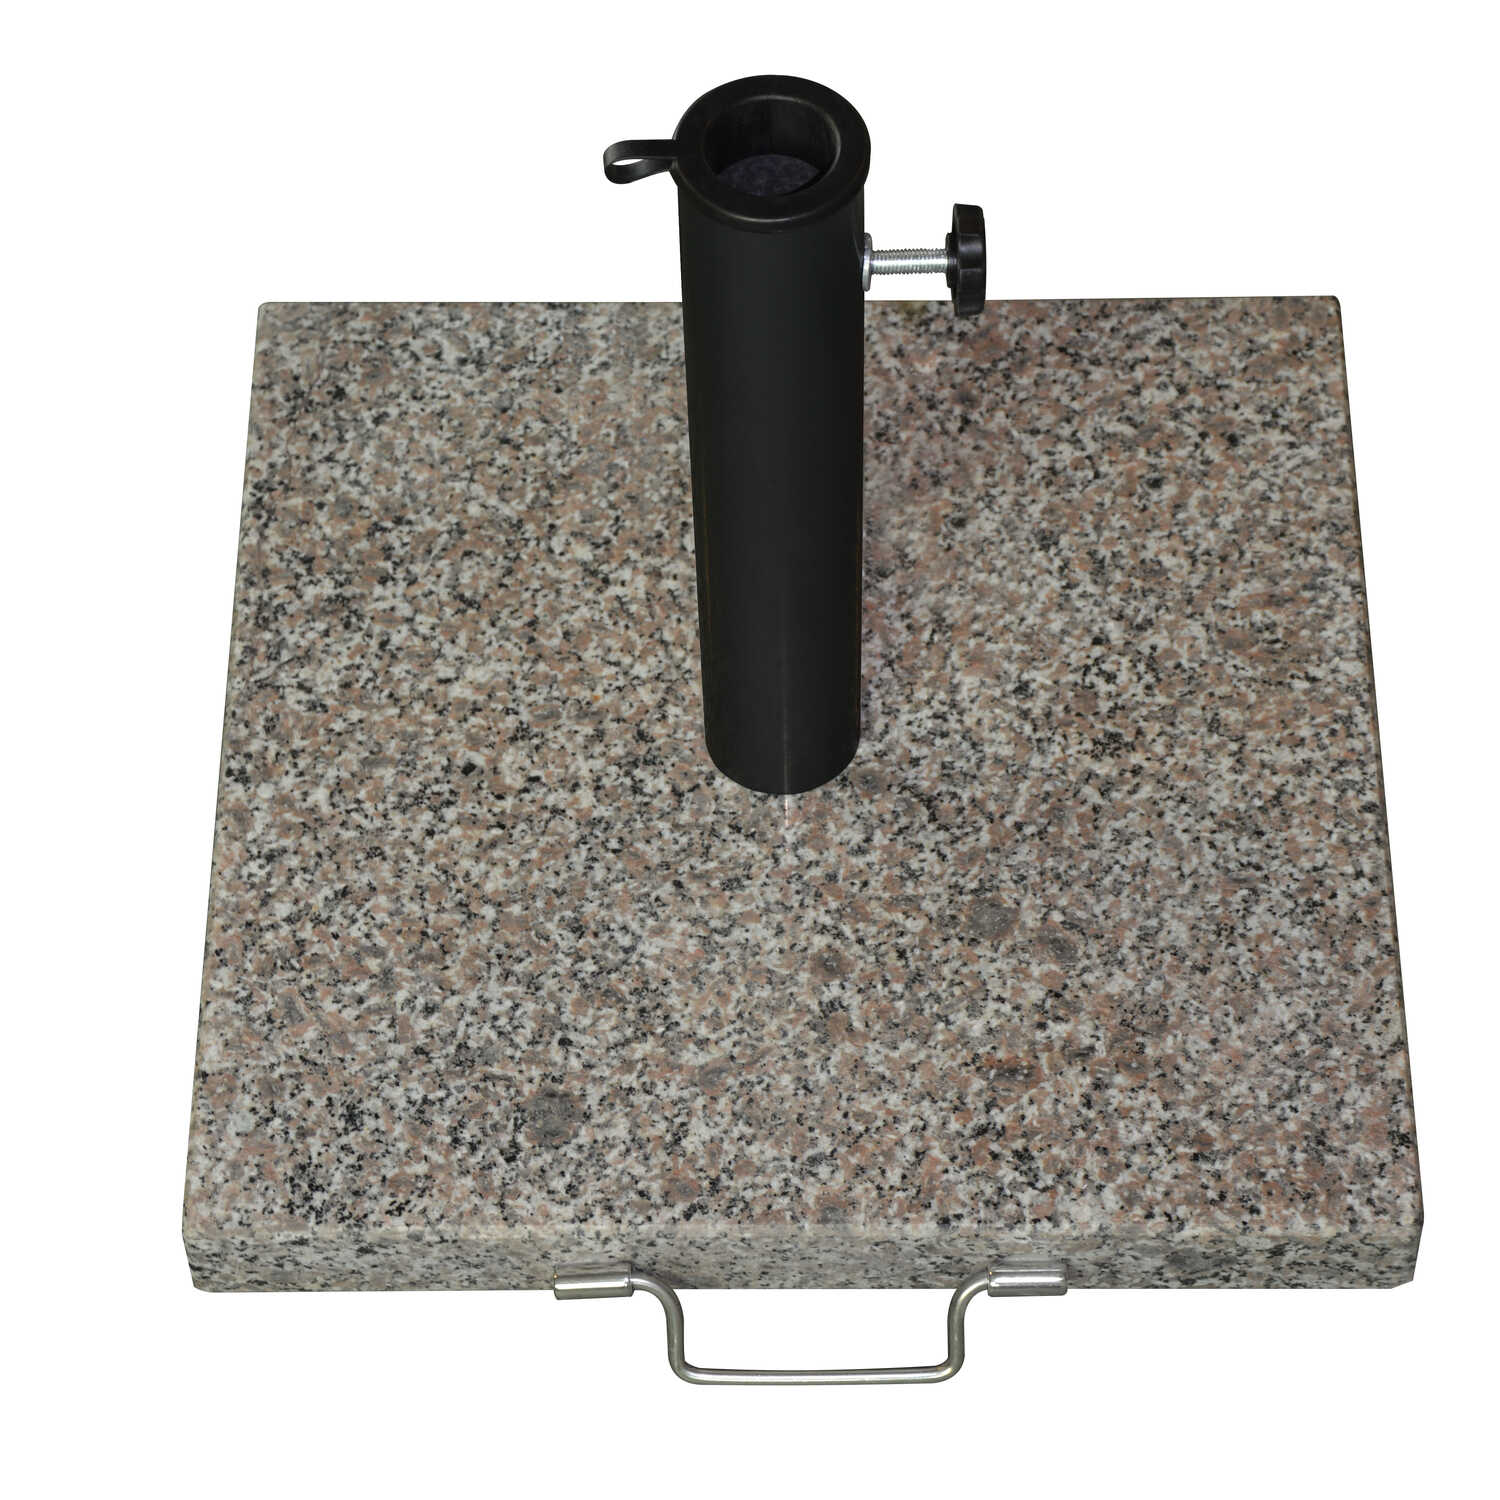 Bond  Gray  Granite  Umbrella Base  17 in. L x 17 in. W x 12.6 in. H